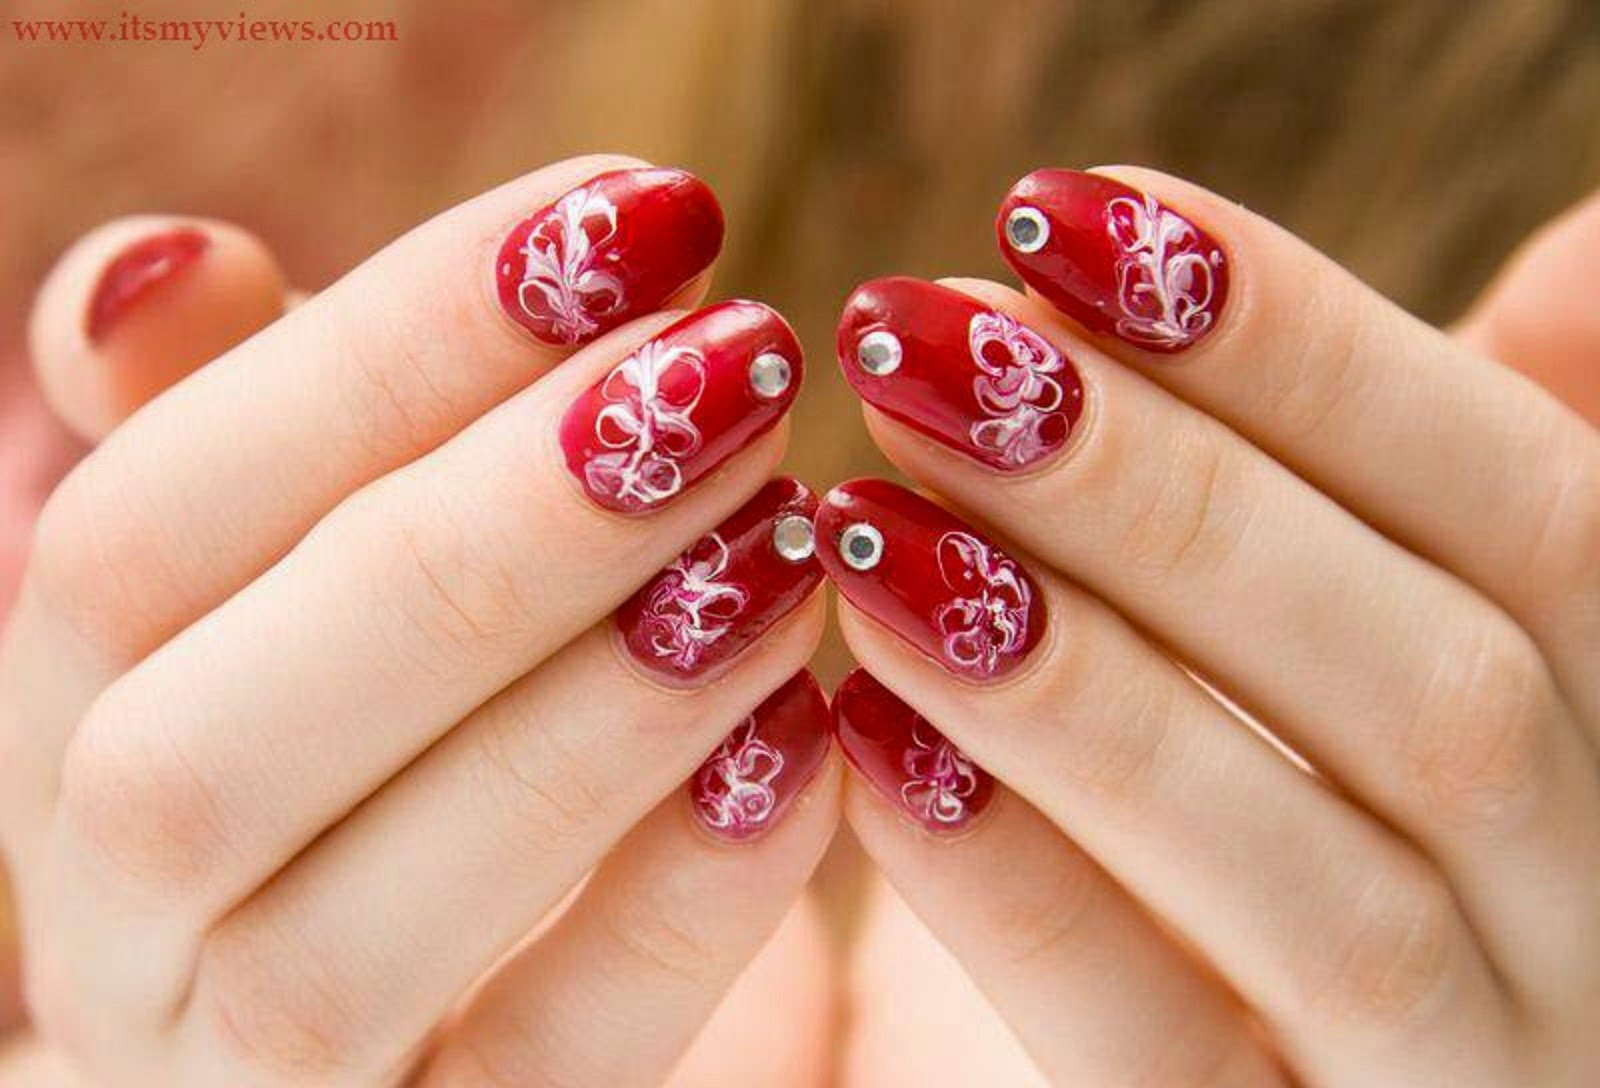 Nails Art 2014 Wallpaper